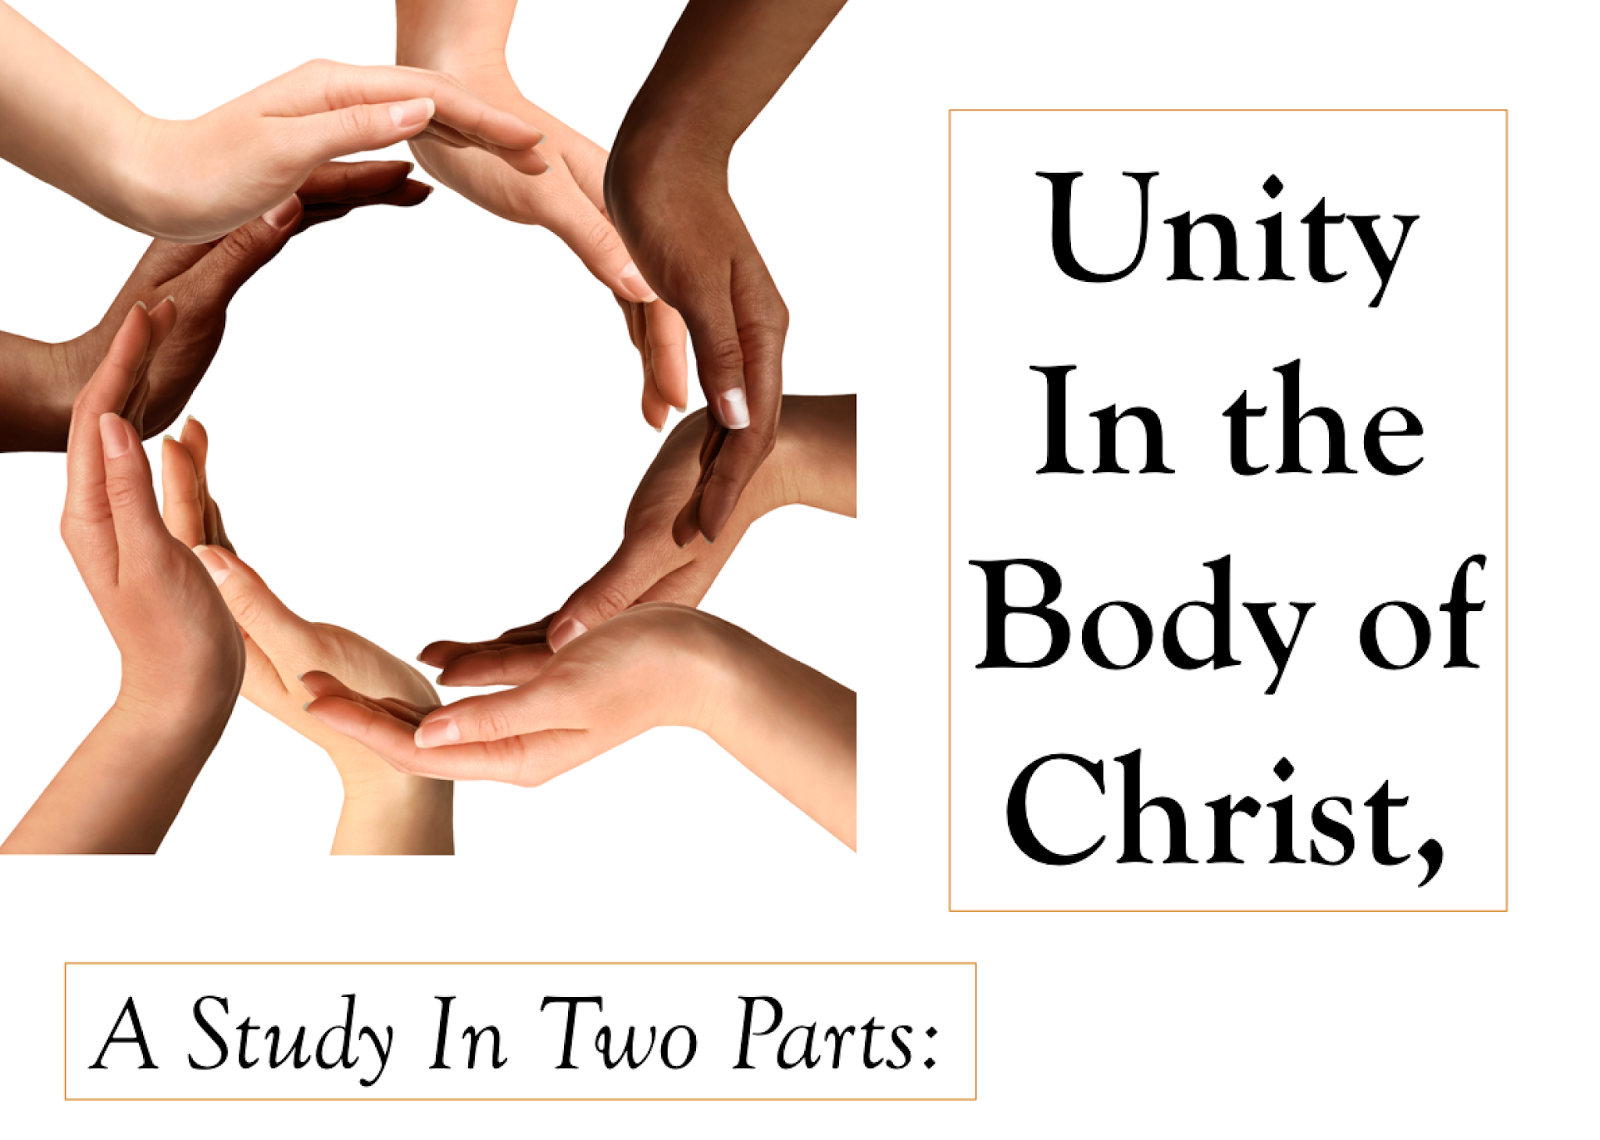 Unity of Purpose in the Body of Christ